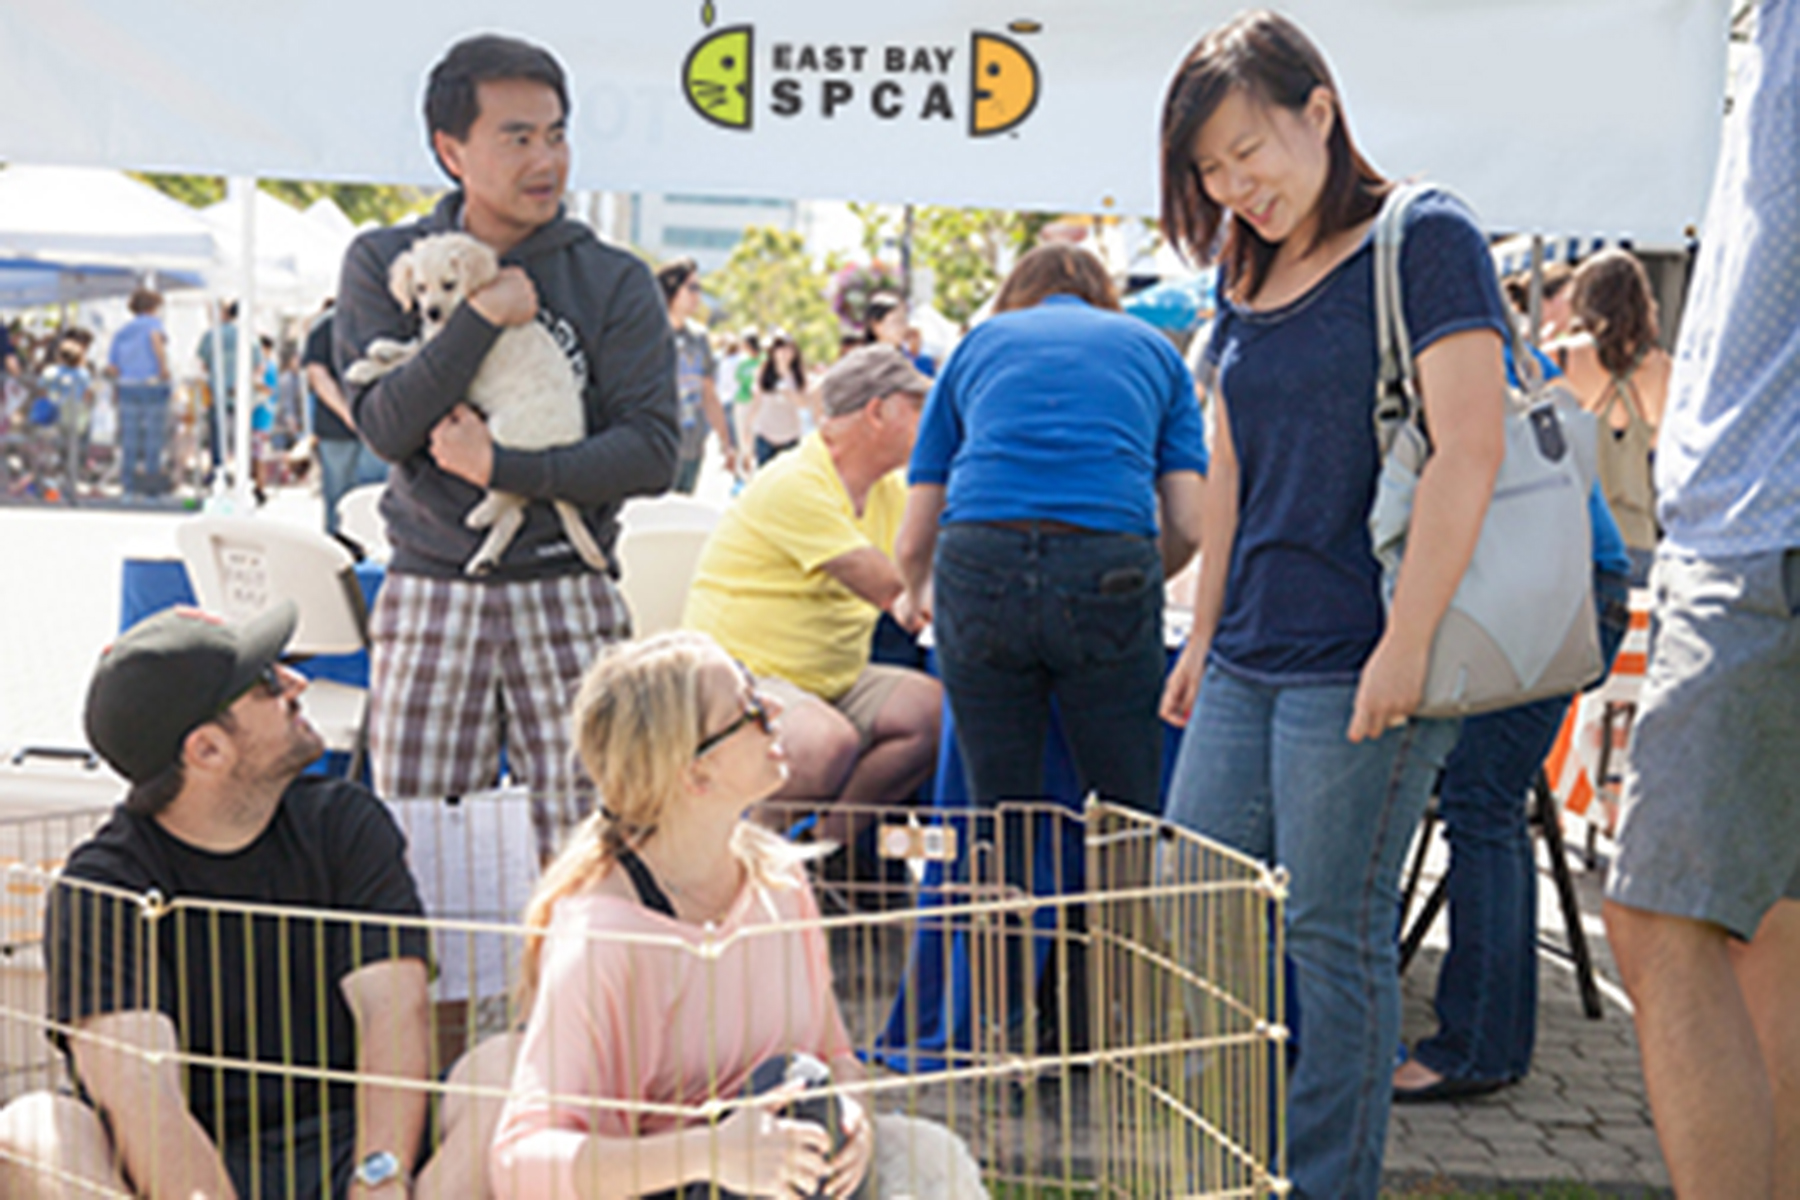 East Bay SPCA Adopt-a-thon @ Jack London Square